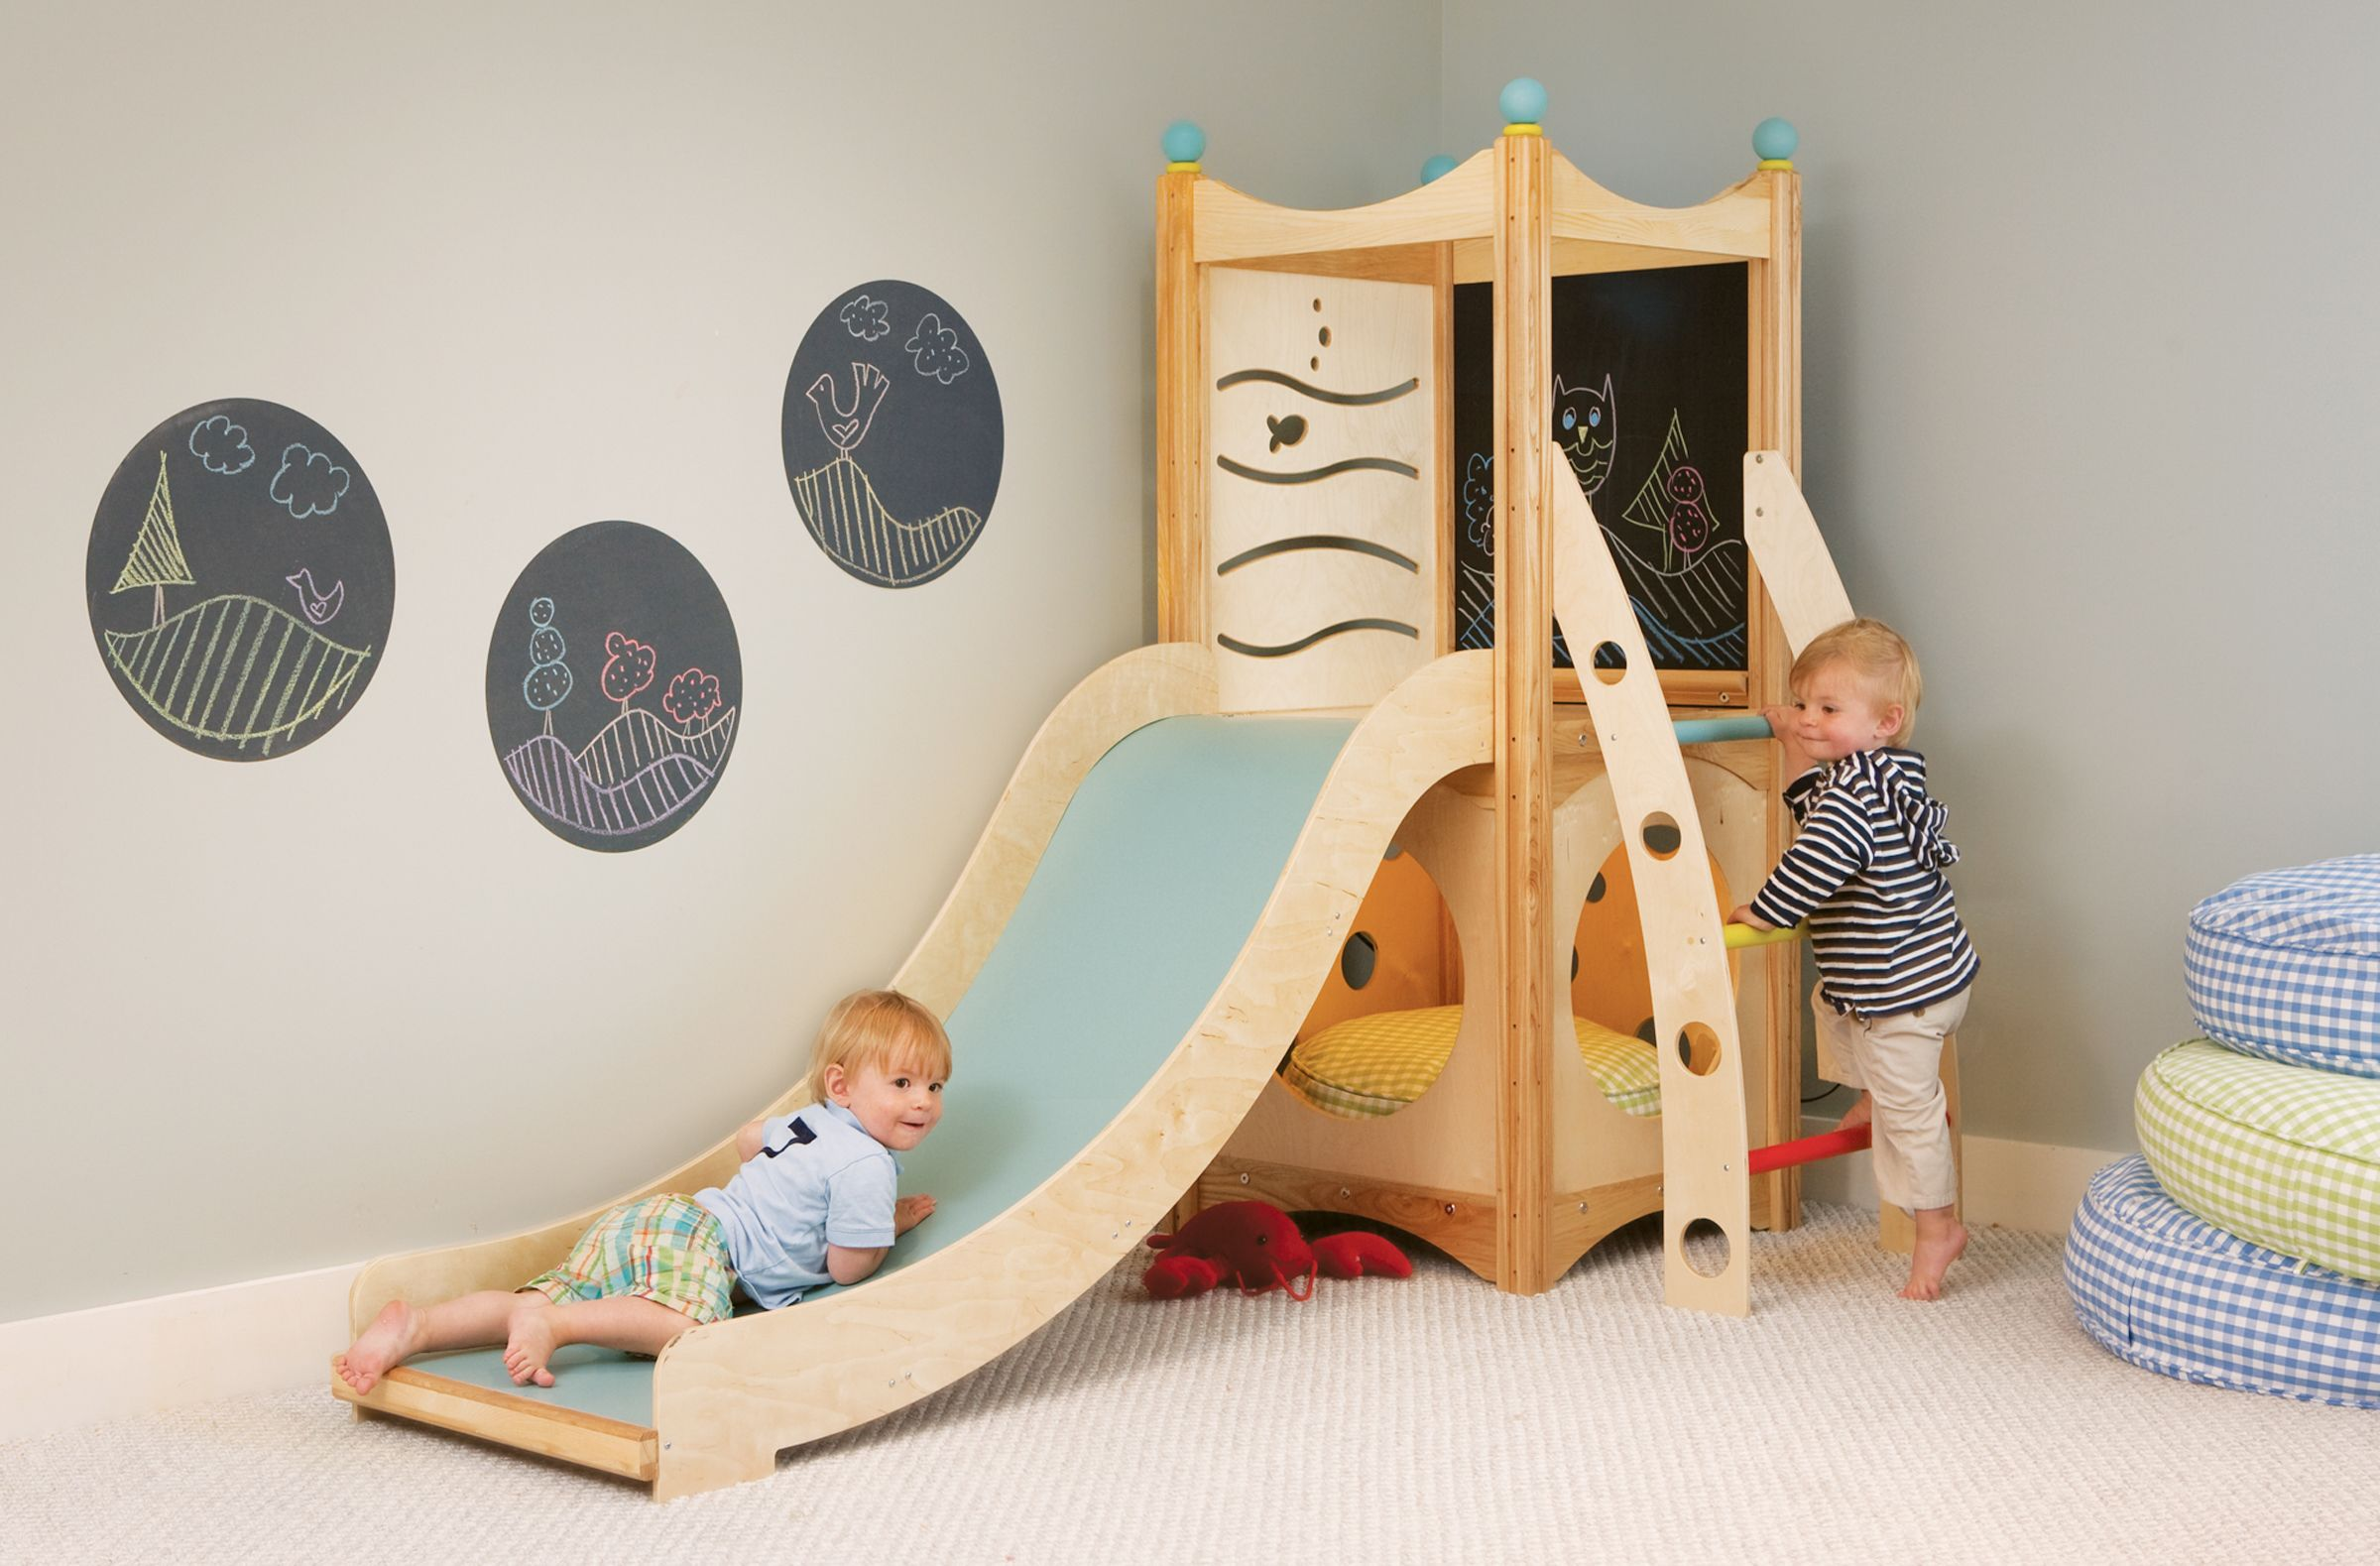 Rhapsody 1 Indoor Playsets And Playbeds | CedarWorks Great Pictures